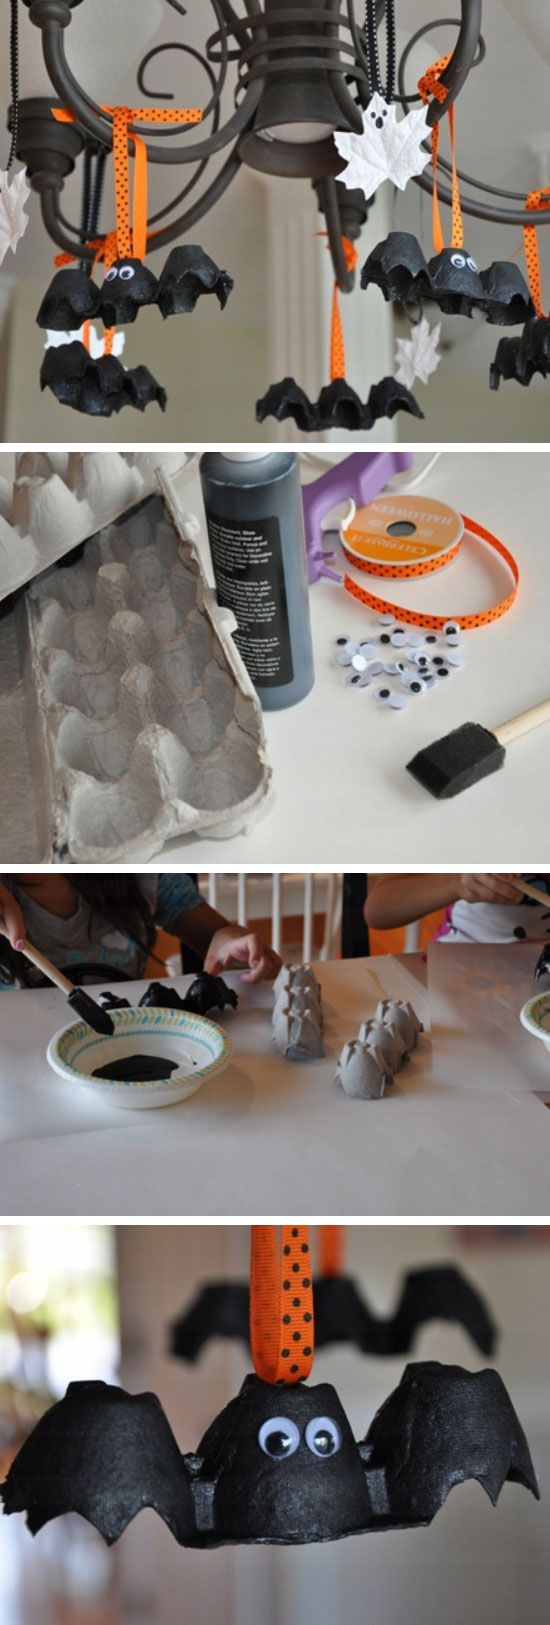 egg carton batsthese are the best homemade halloween decorations craft ideas - Easy Homemade Halloween Decorations